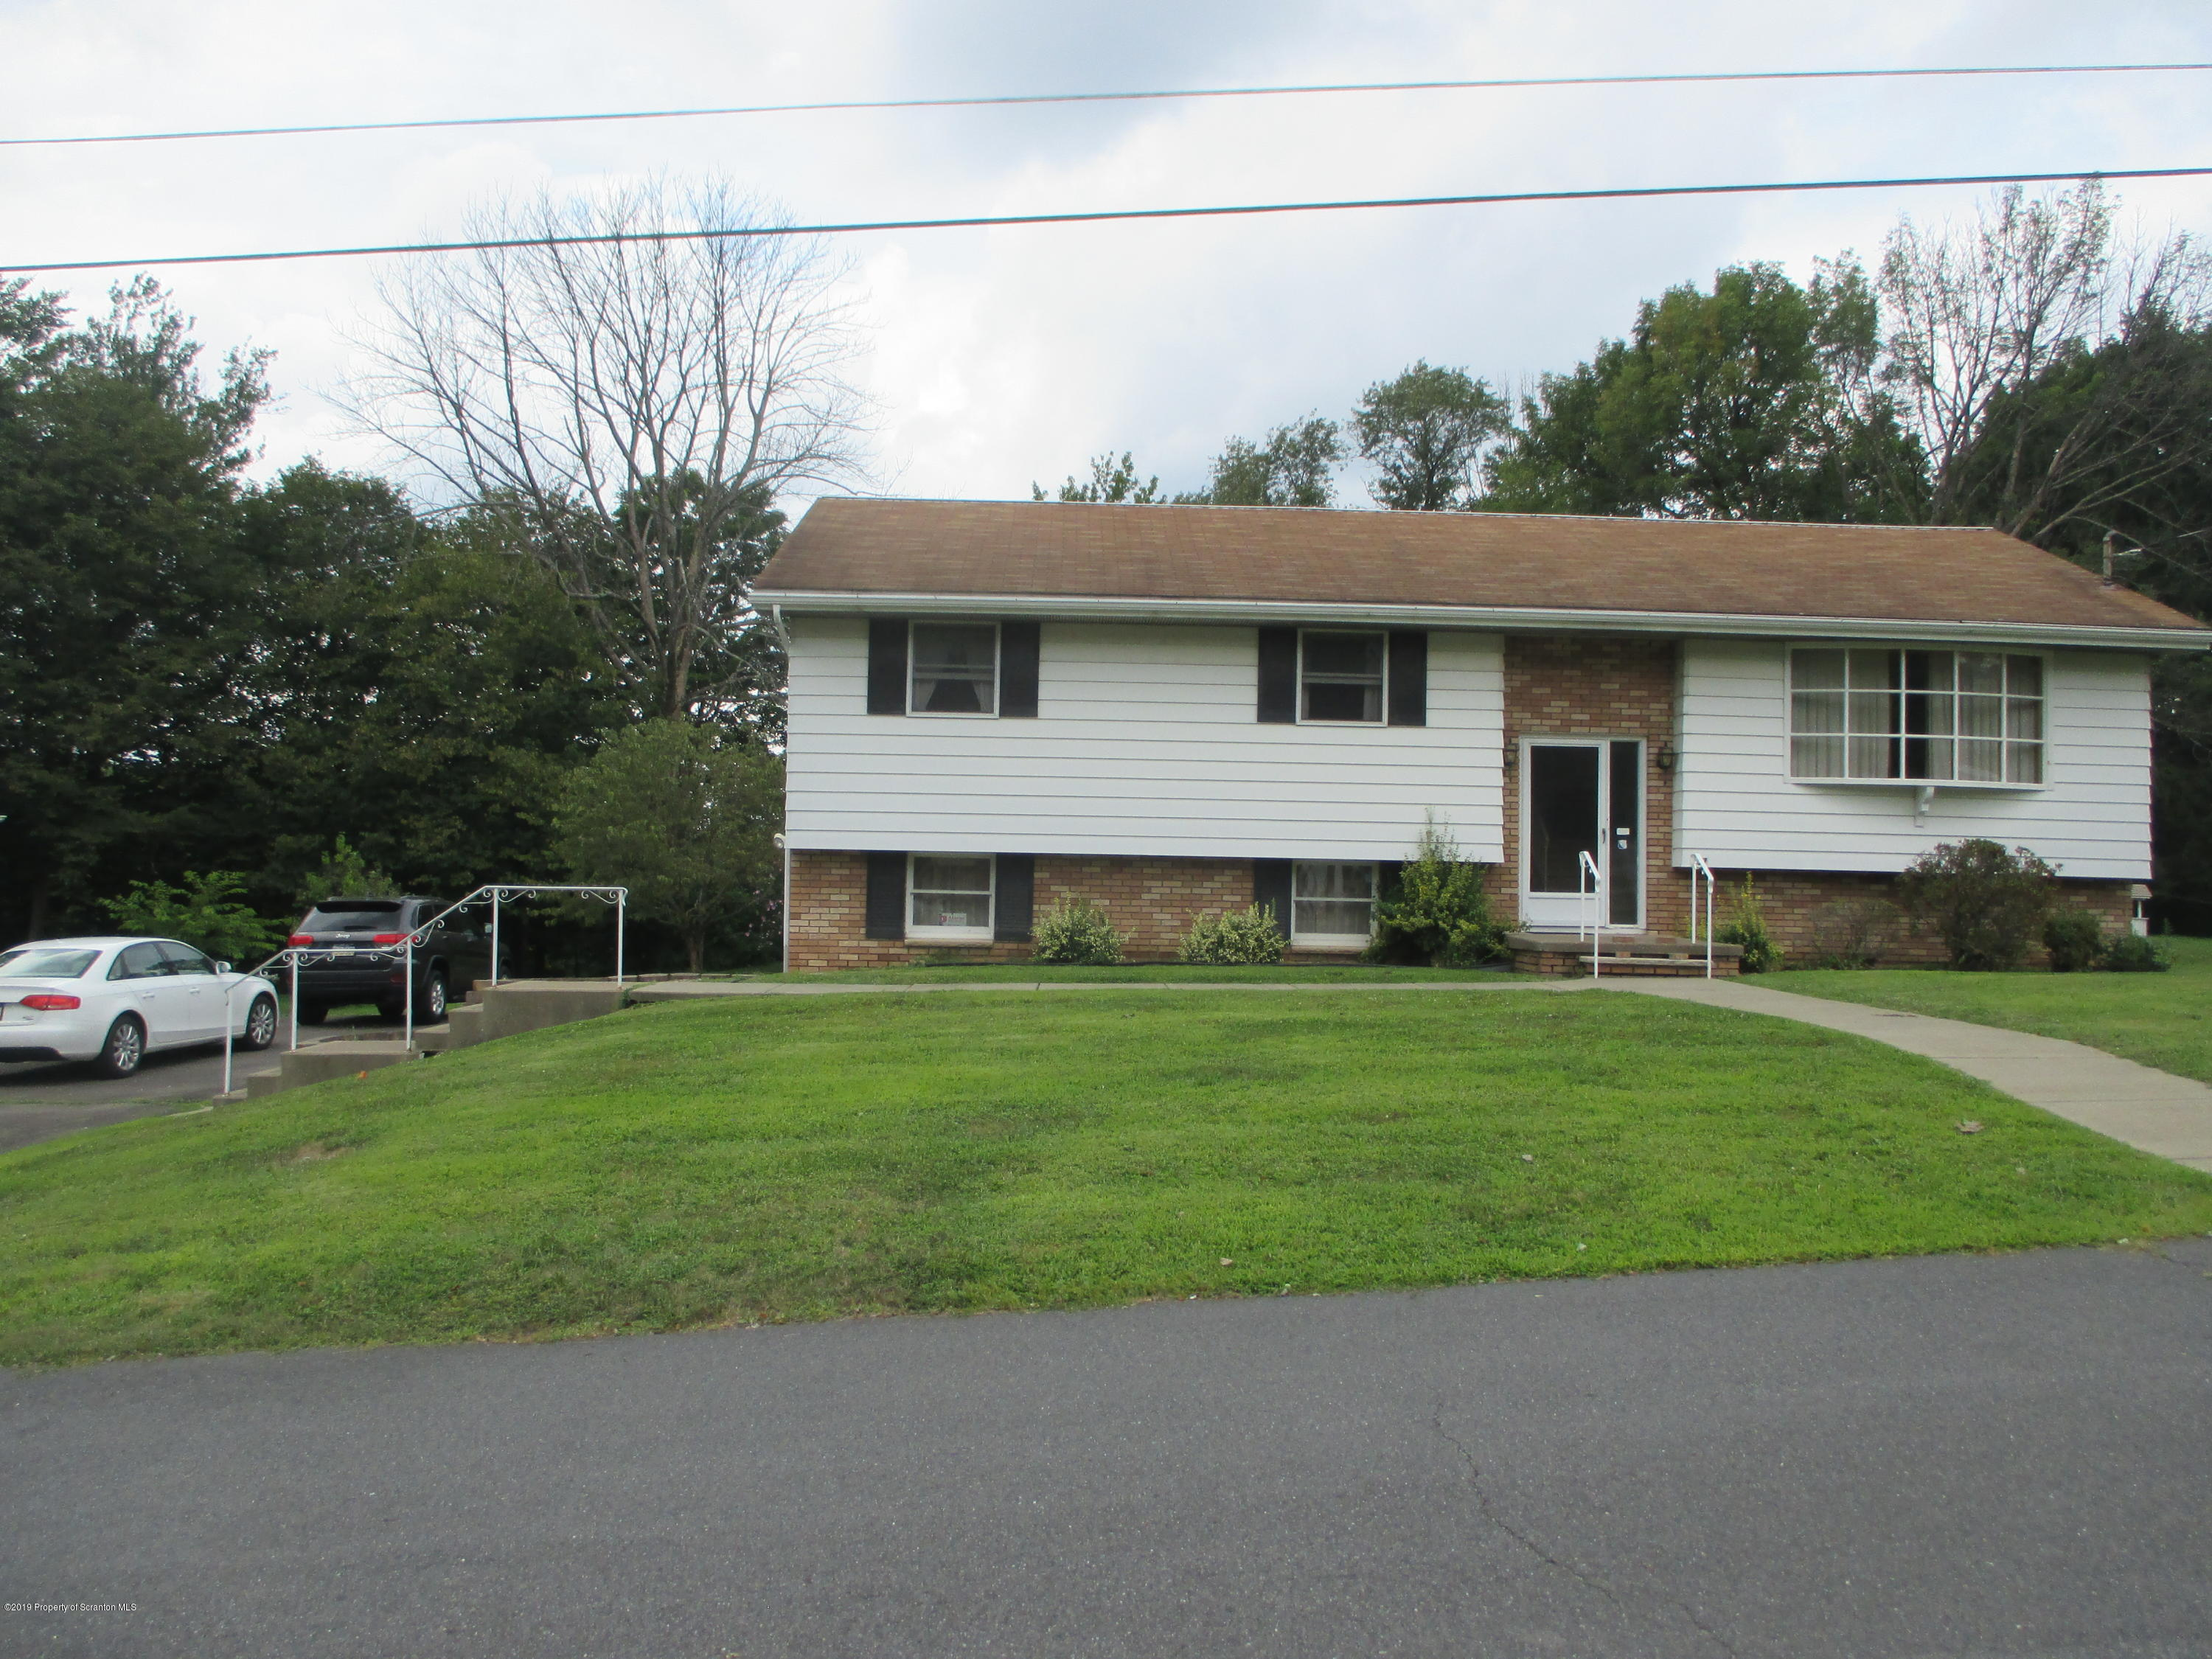 507 Clover St, South Abington Twp, Pennsylvania 18411, 3 Bedrooms Bedrooms, 6 Rooms Rooms,2 BathroomsBathrooms,Single Family,For Sale,Clover,19-3911